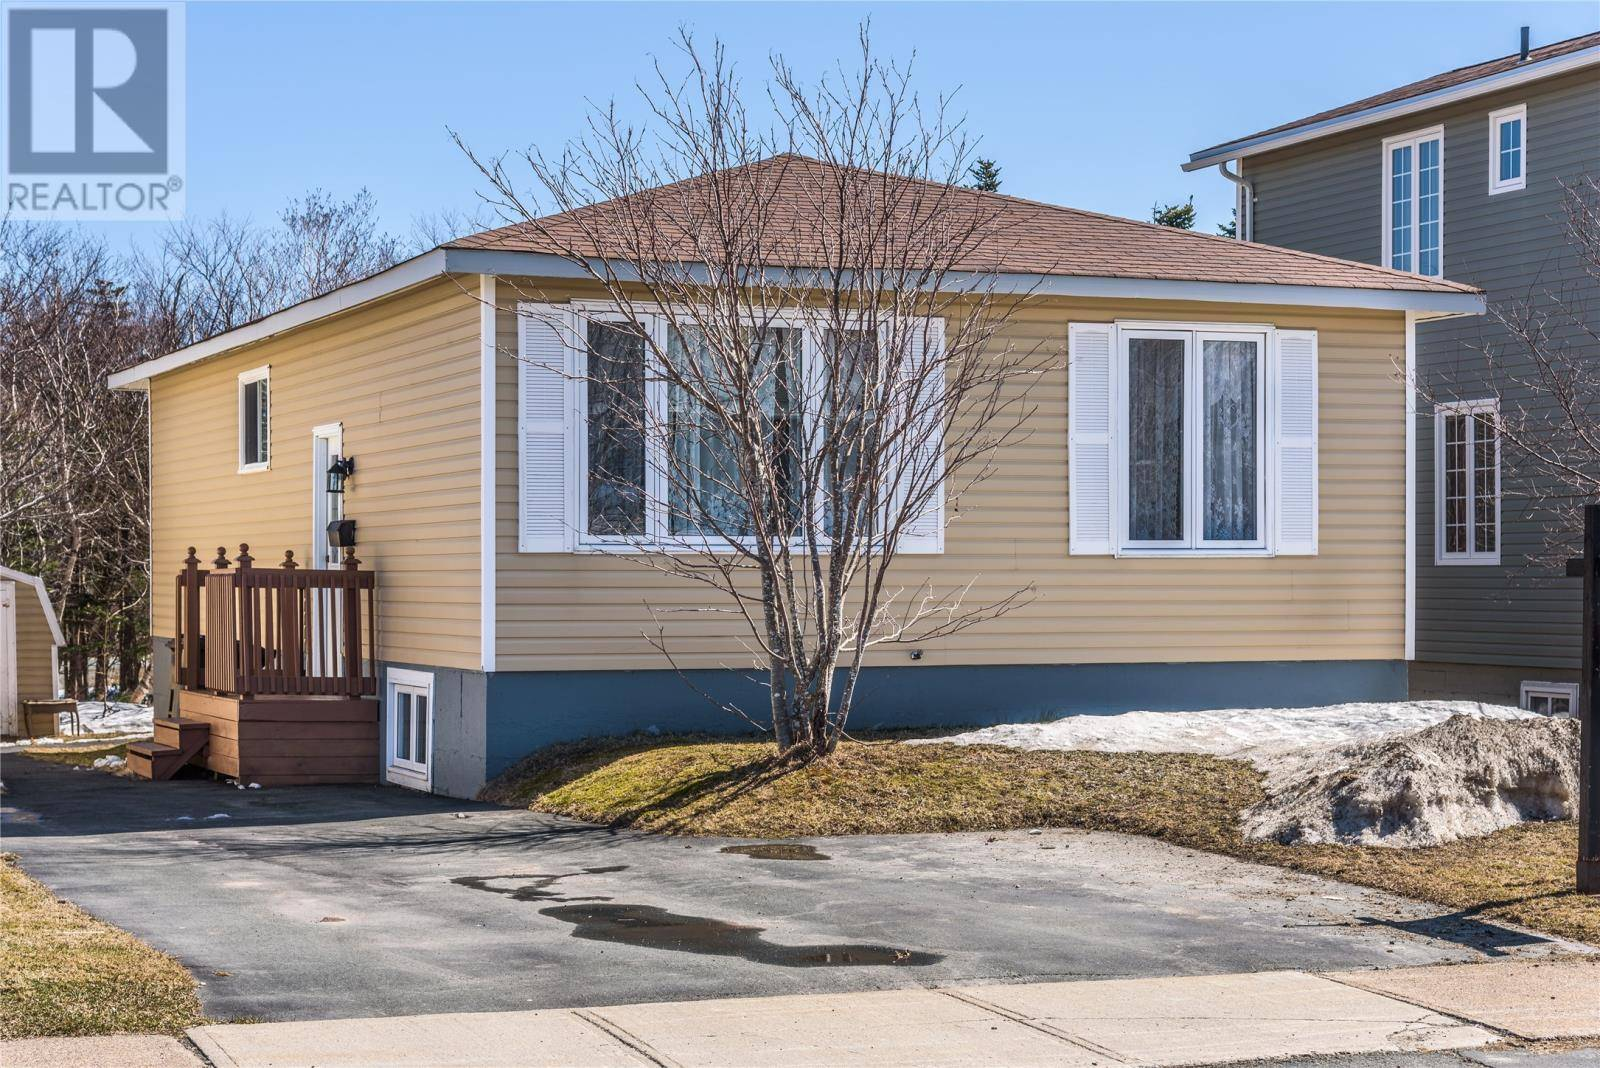 House for sale at 20 Harvard Dr Mount Pearl Newfoundland - MLS: 1210133